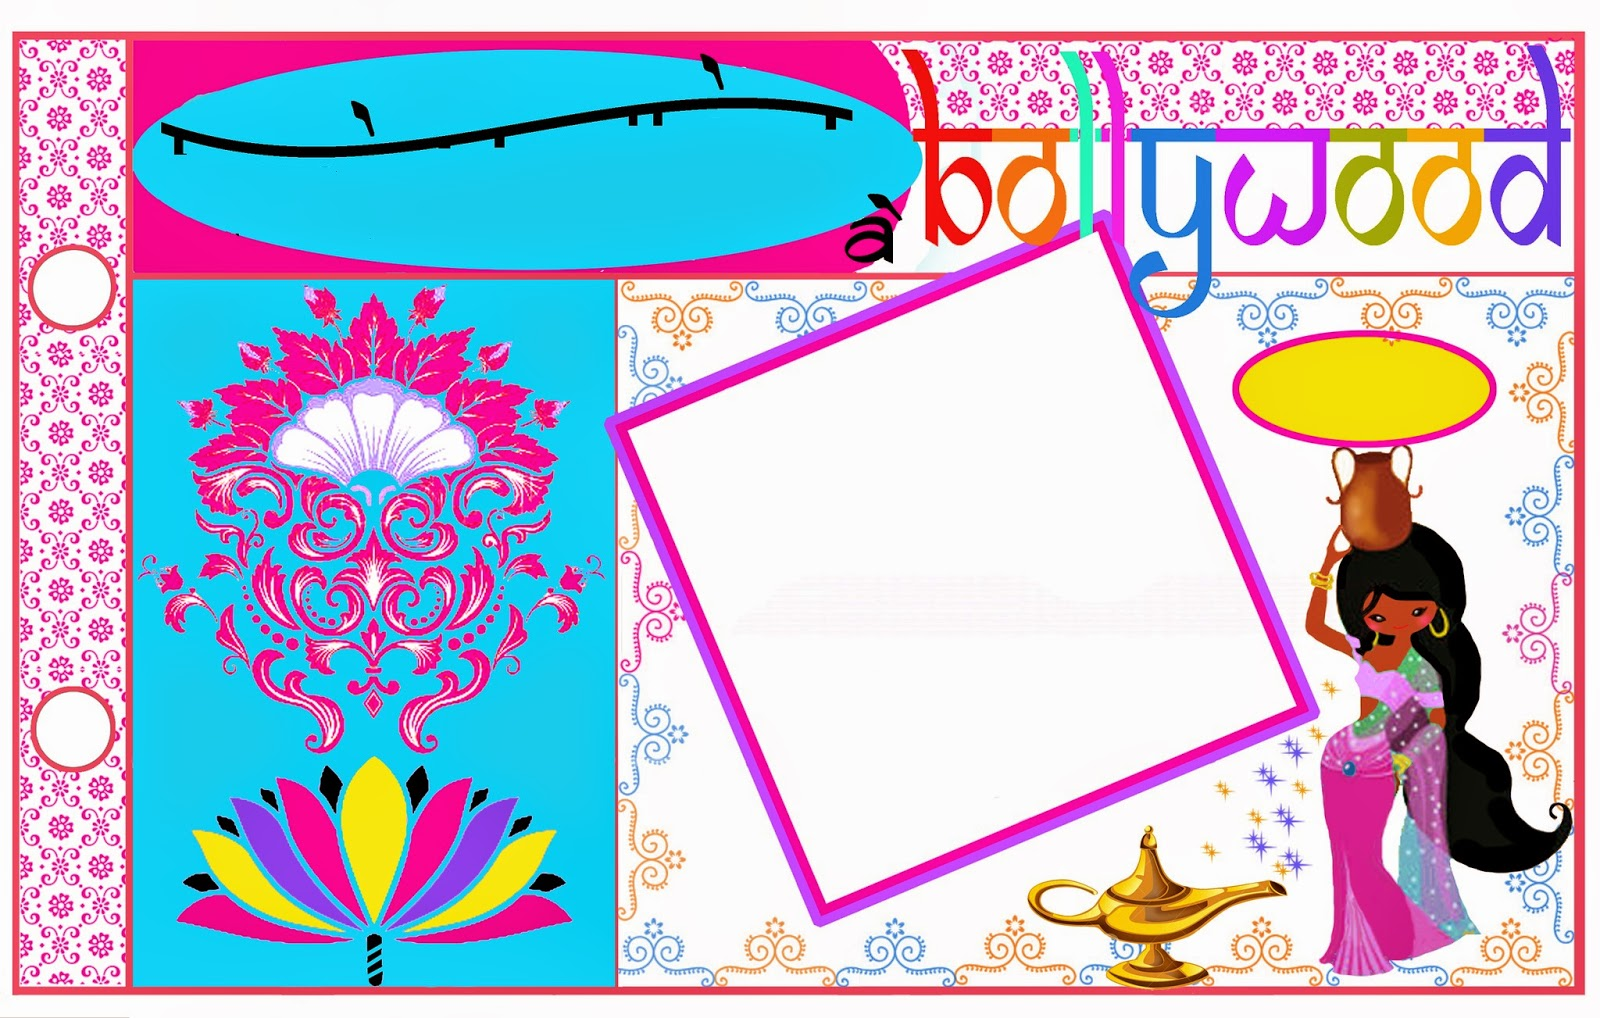 Bollywood: Free Printable Photo Album. | Oh My Fiesta! in